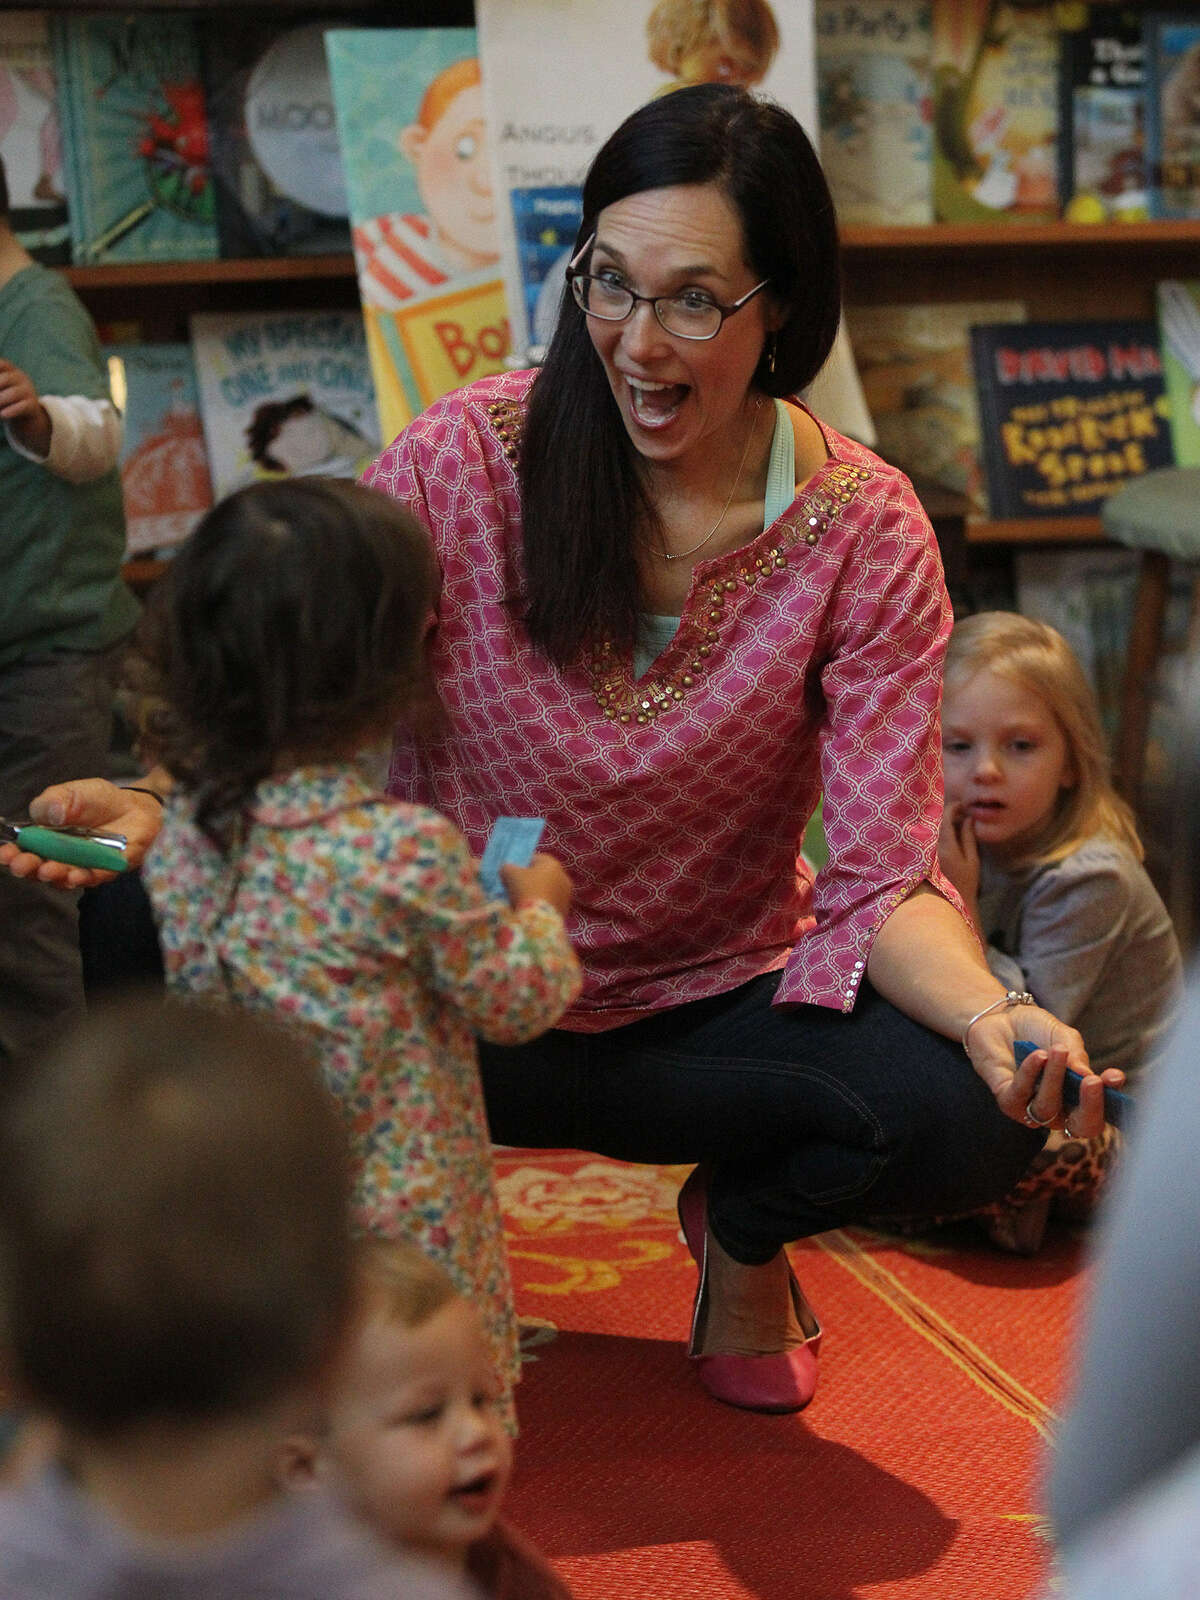 McKenna, a former schoolteacher, has hosted a weekly story time at The Twig Book Shop for the past 14 years.